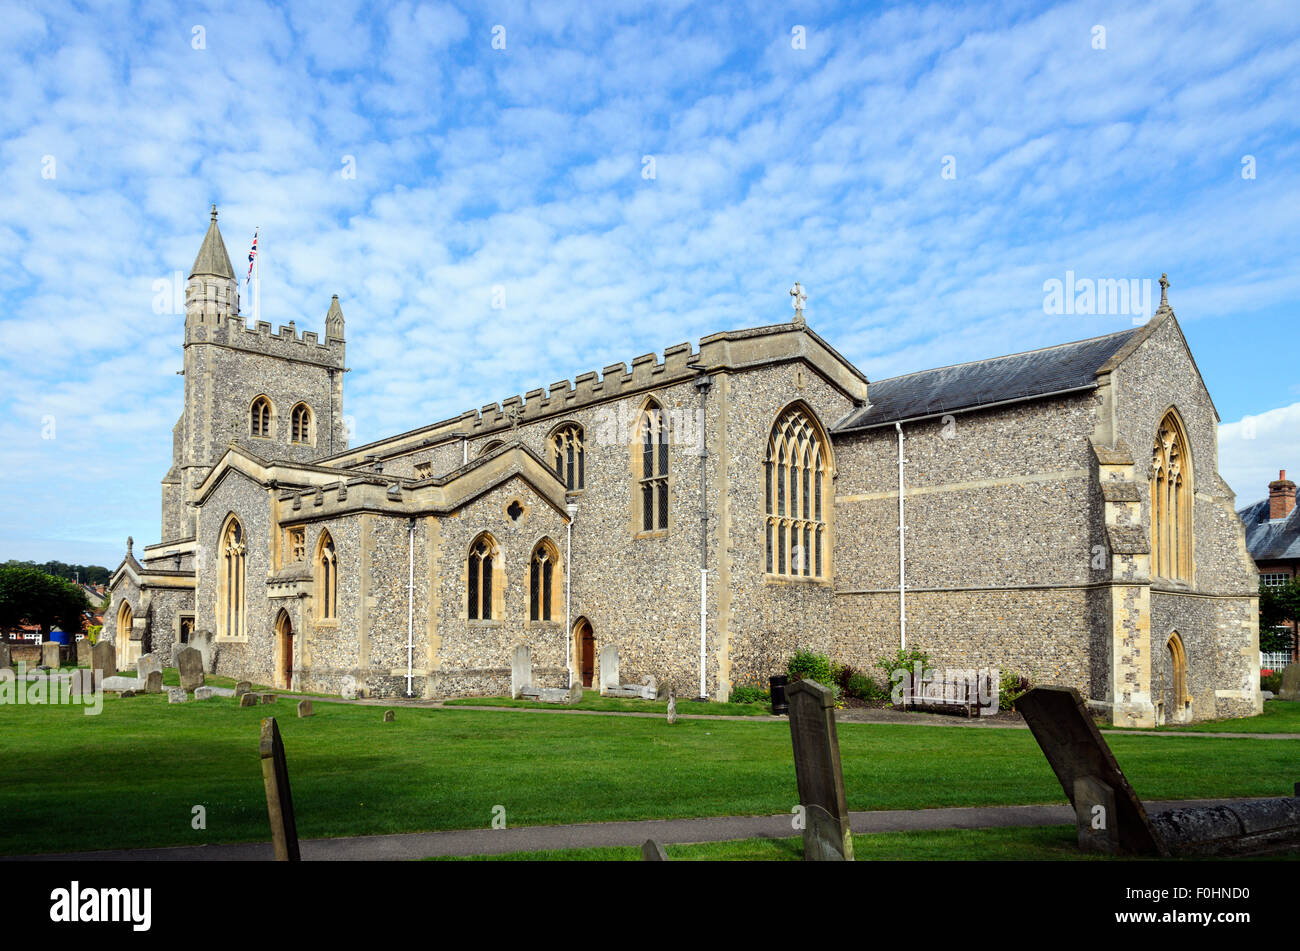 St Marys Parish Church, Old Amersham, Buckinghamshire, England UK. - Stock Image